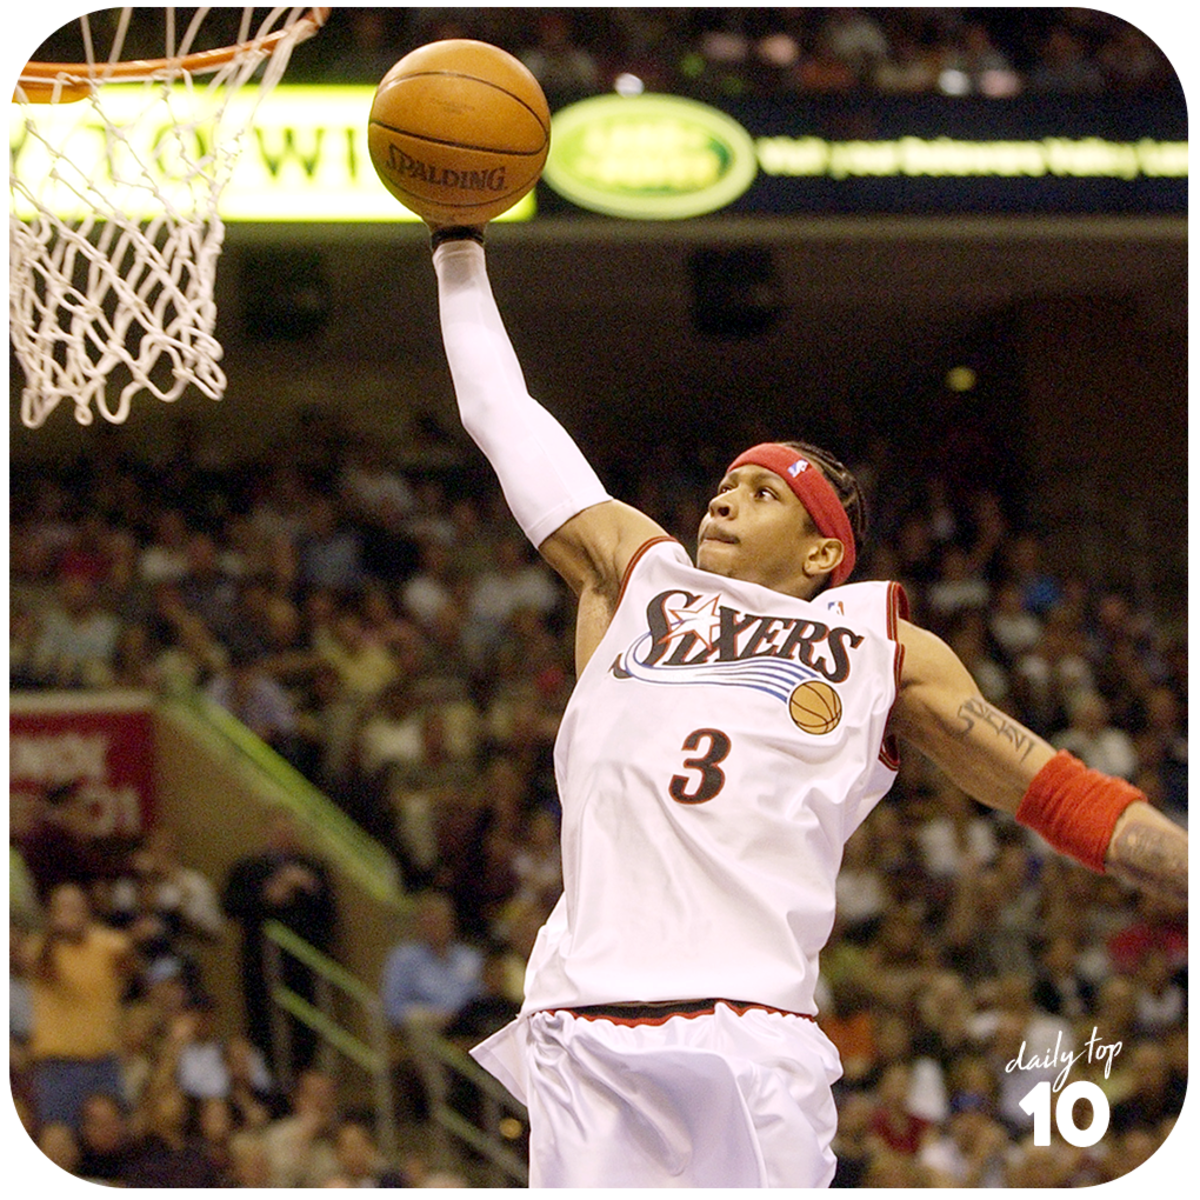 Allen Iverson dunking the basketball.